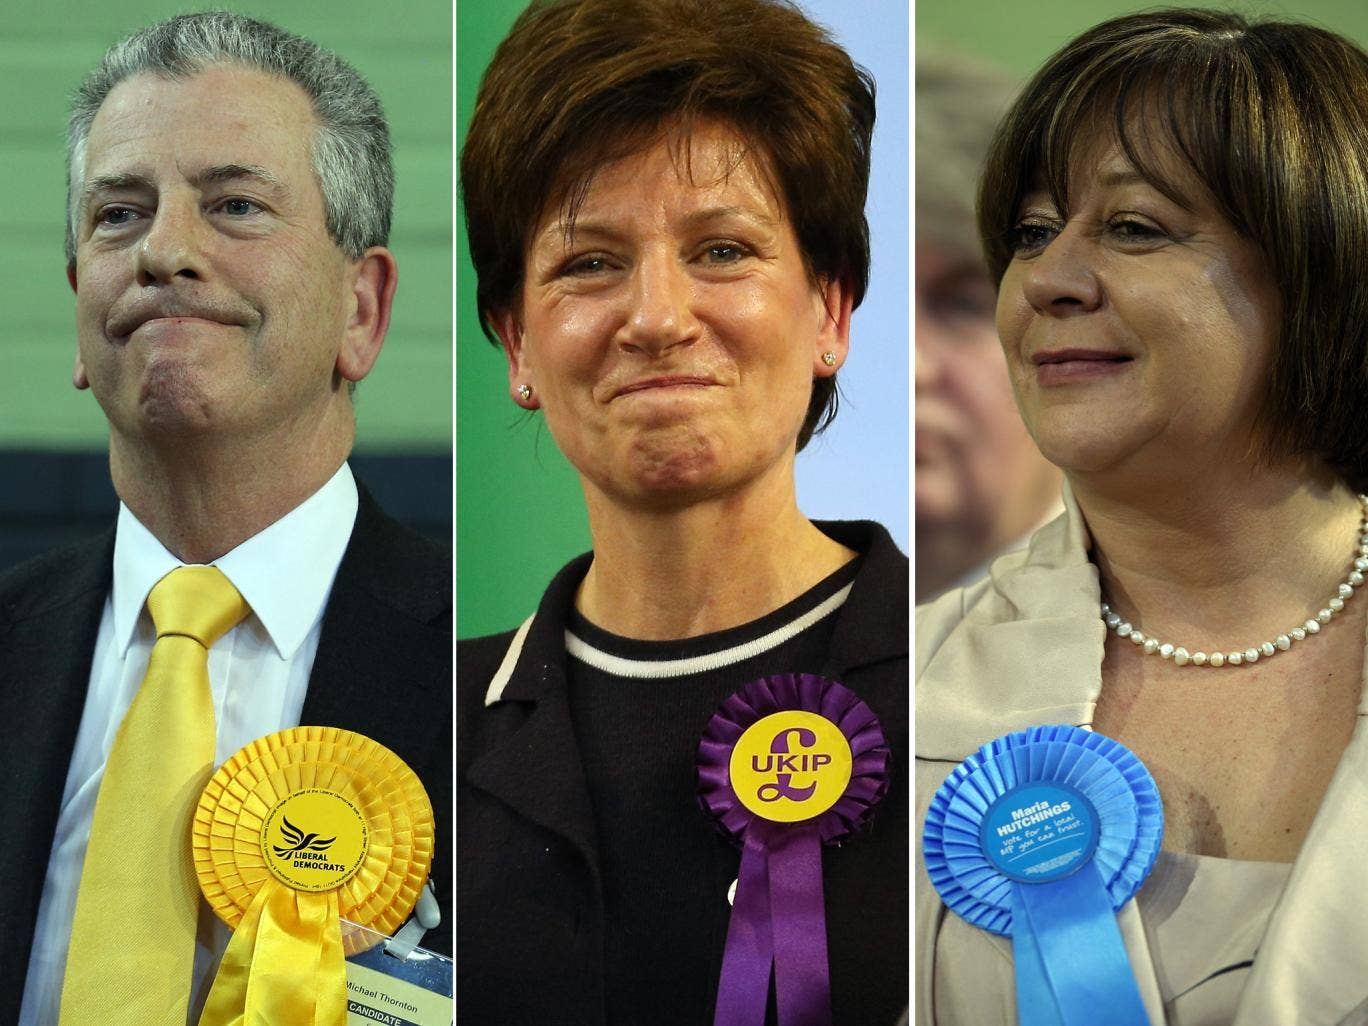 1, 2, 3: Liberal Democrat candidate Mike Thornton (left) celebrates his win at the Eastleigh by-election;  Ukip candidate Diana James celebrates beating the Conservatives; Conservative candidate Maria Hutchings listens to the declaration